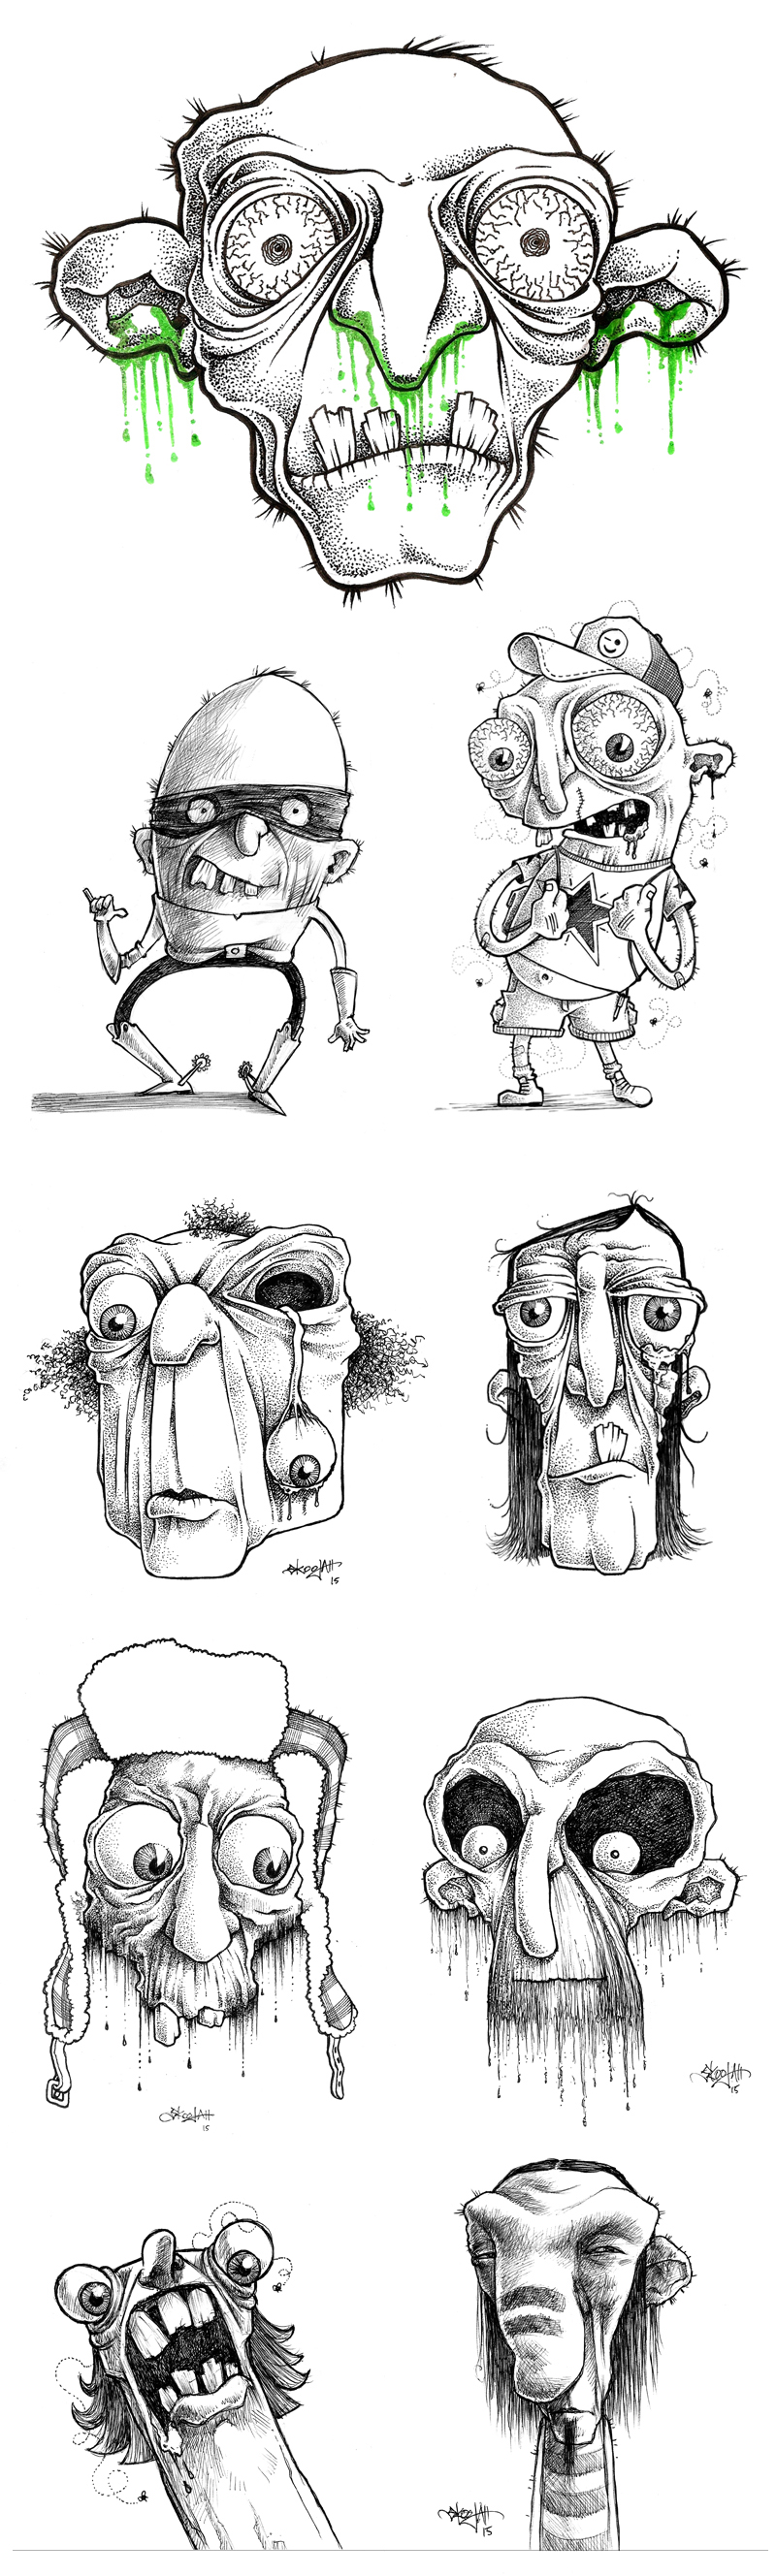 Characters2015_site_creative1